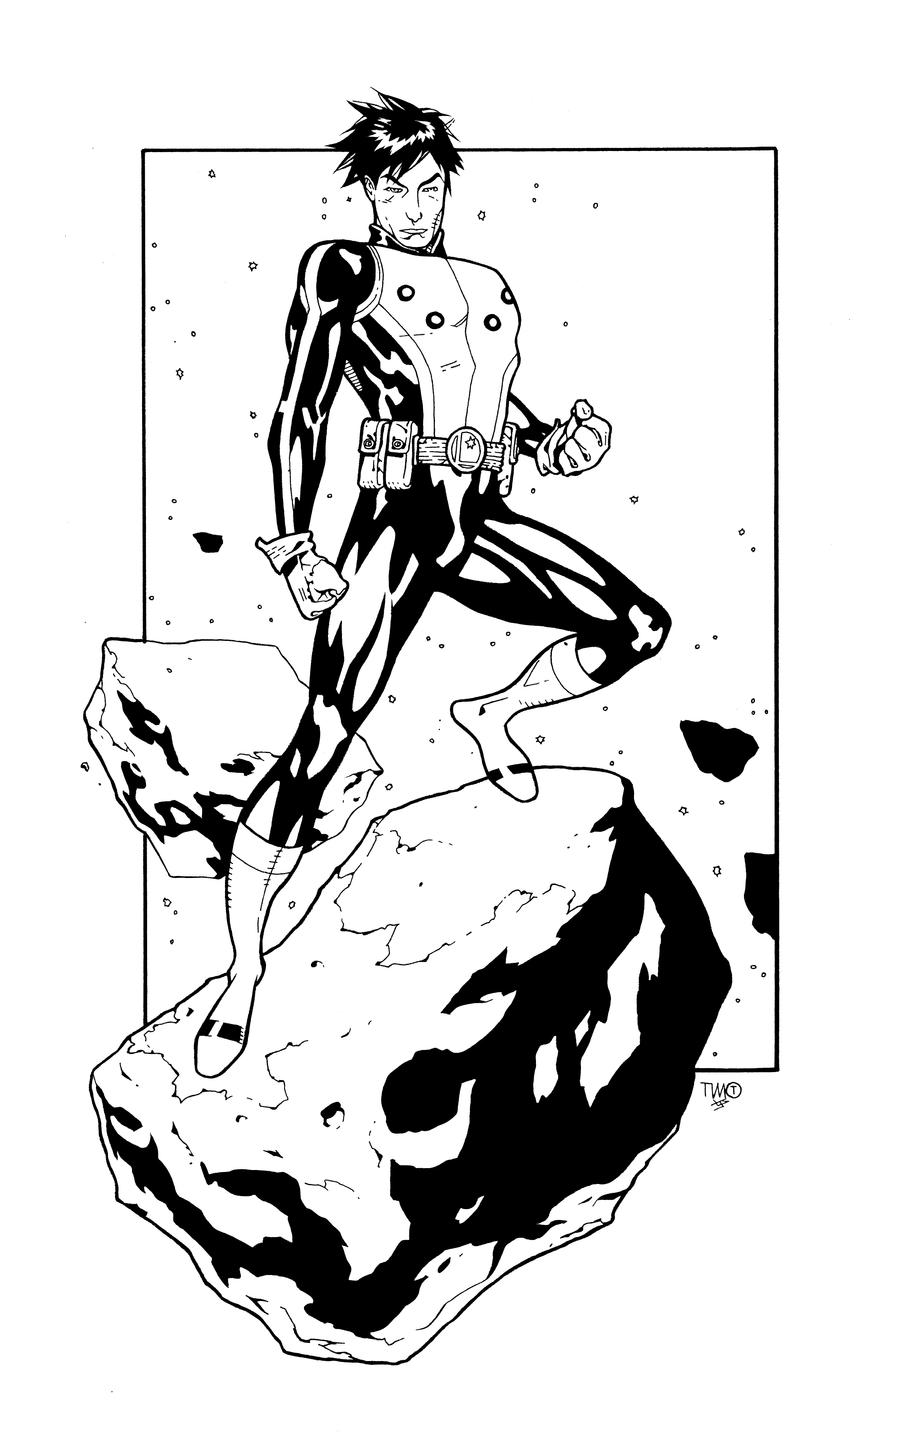 Cosmic Boy inks by JosephLSilver